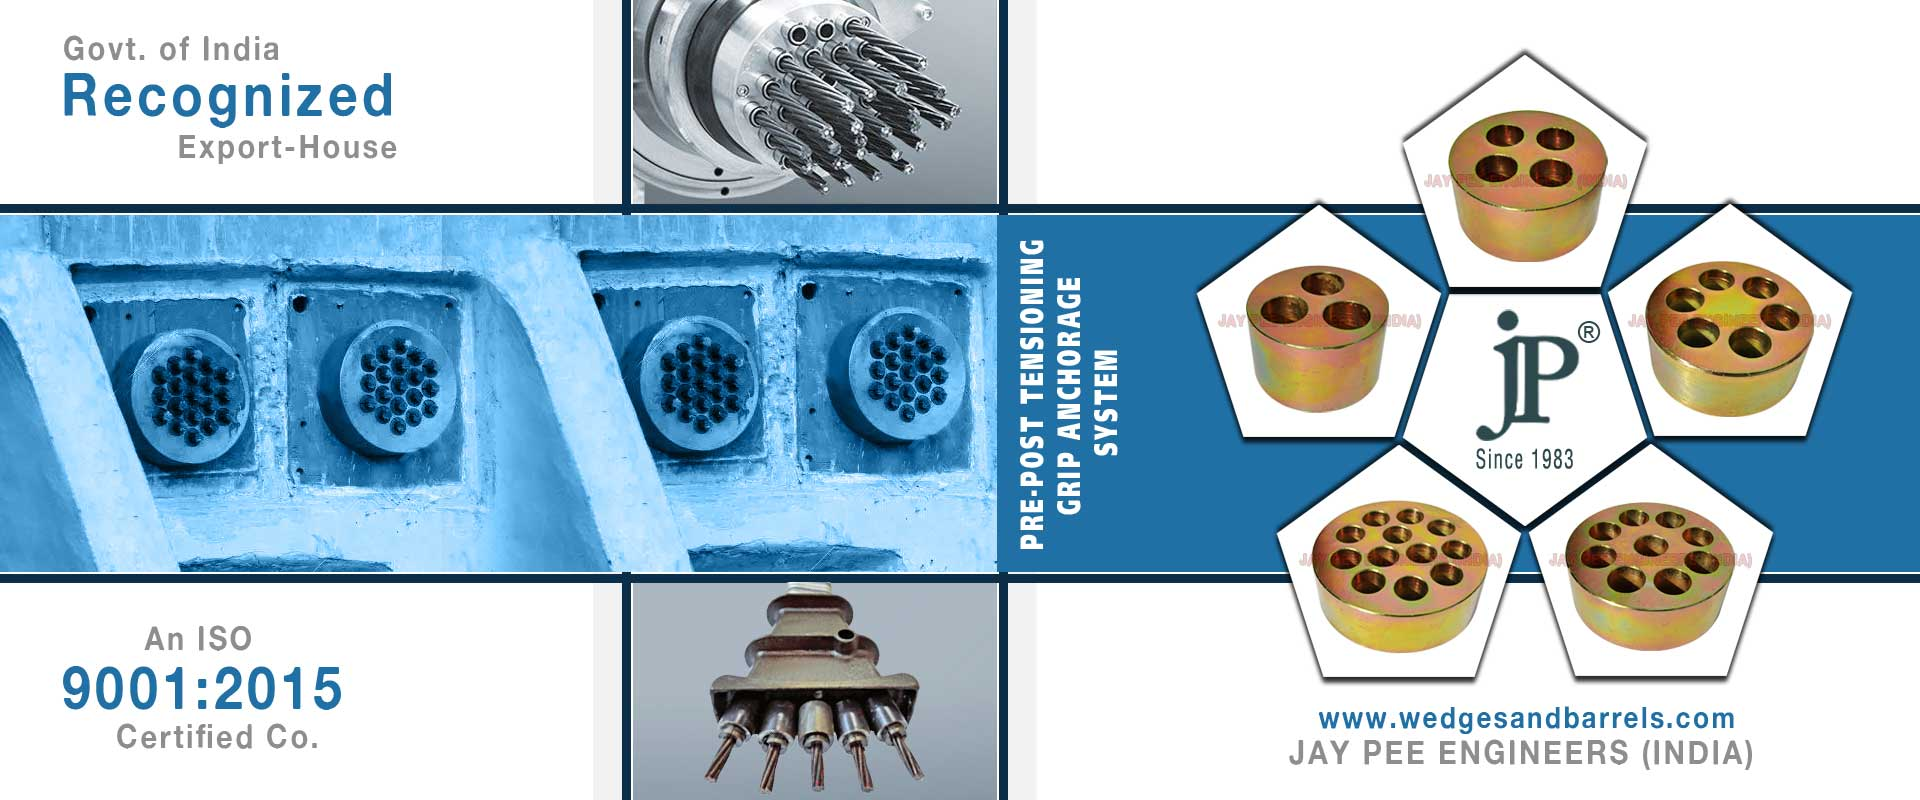 Anchor Wedges and Barrels - Prestressing Wedges and Barrels - Anchorite Wedges - Tapered Barrels - Anchor Grips Wedges - Open Grip barrels and Wedges - building components bridge barrel & wedge - Gripfast Wedges manufacturers suppliers exporters in india punjab ludhiana